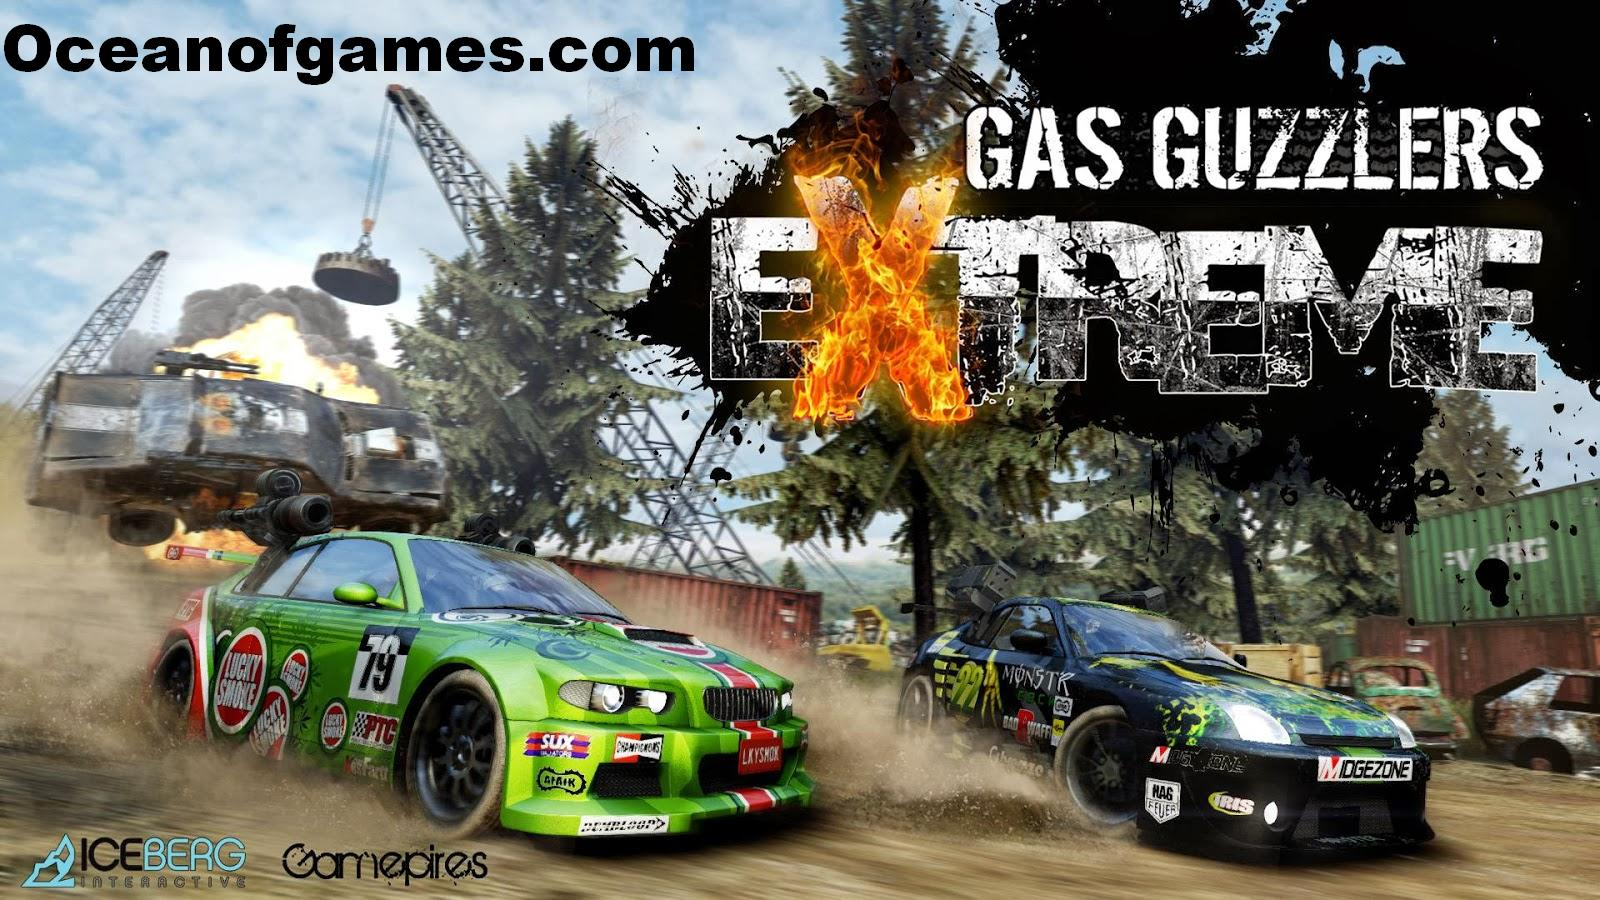 Gas Guzzlers Extreme Free Download, Gas Guzzlers Extreme Free Download